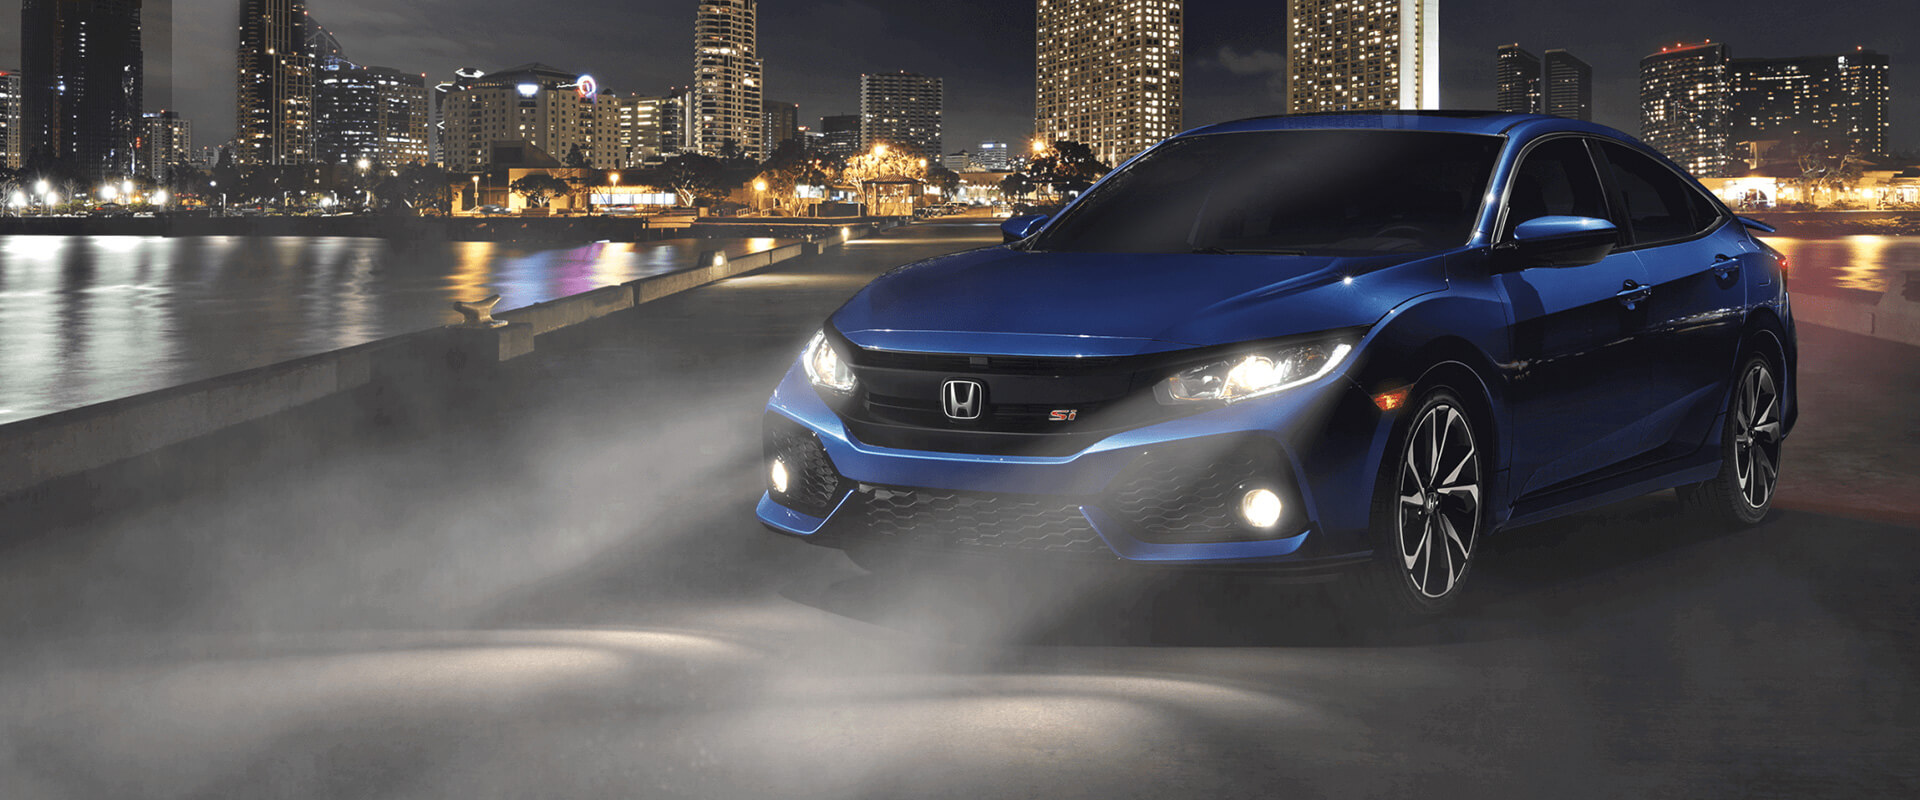 2017 honda civic si for Honda dealer las vegas